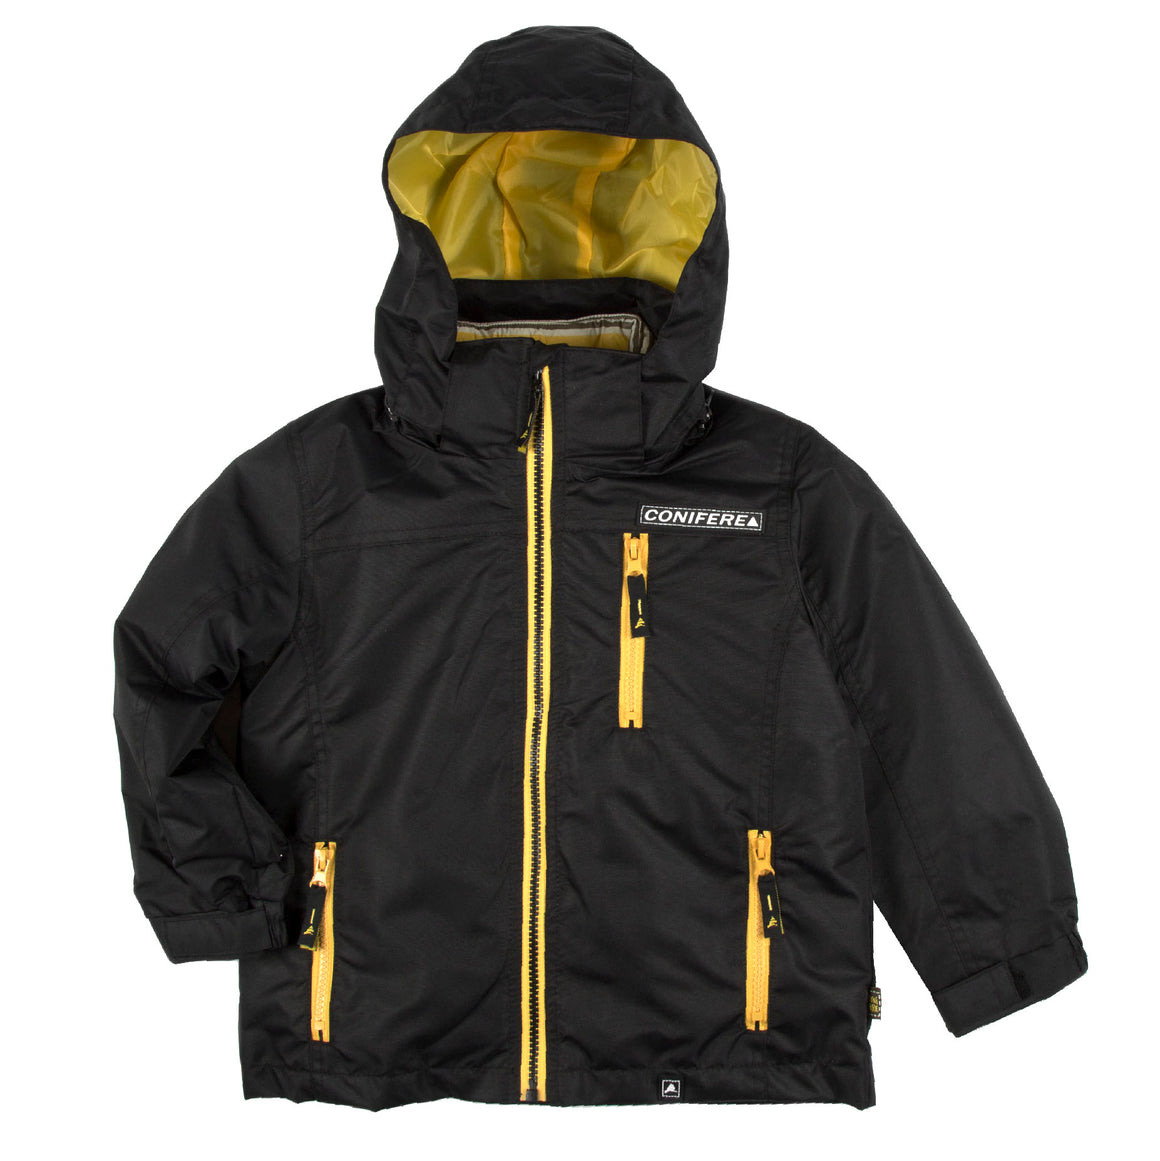 Boy's 3-in-1 Jacket